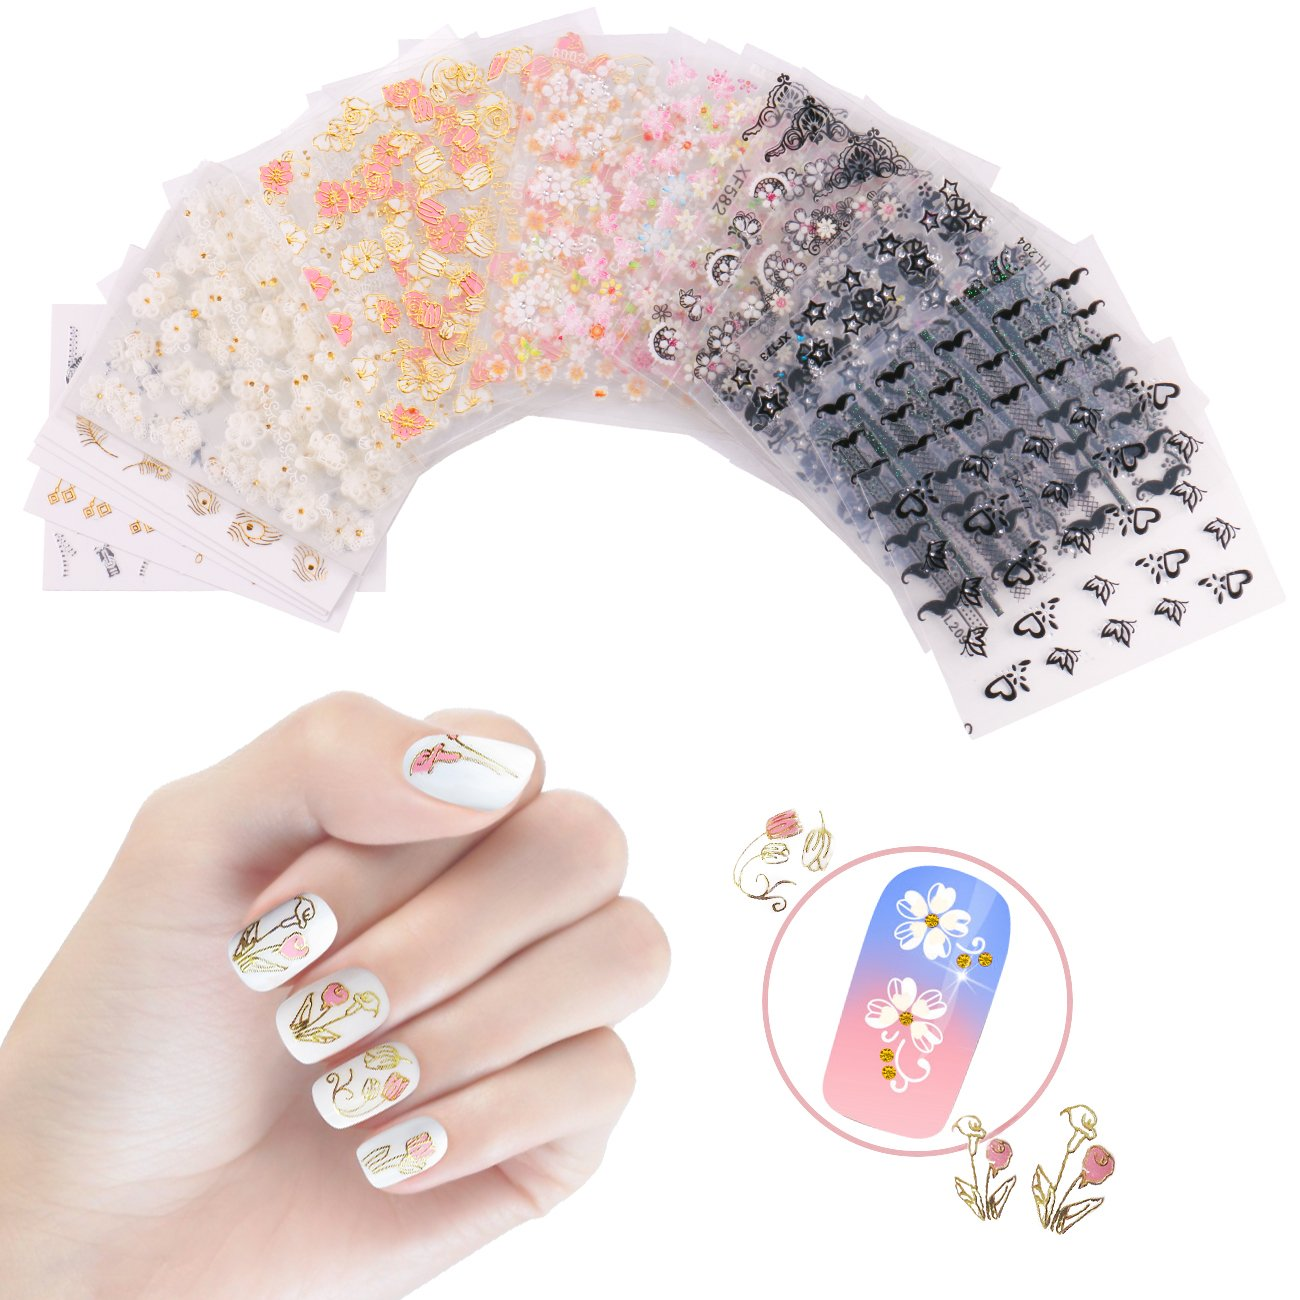 NiceDeco All items in Outstanding the store 50 Sheets 3D Design Nail Tip Self-Adhesive Stickers Nai